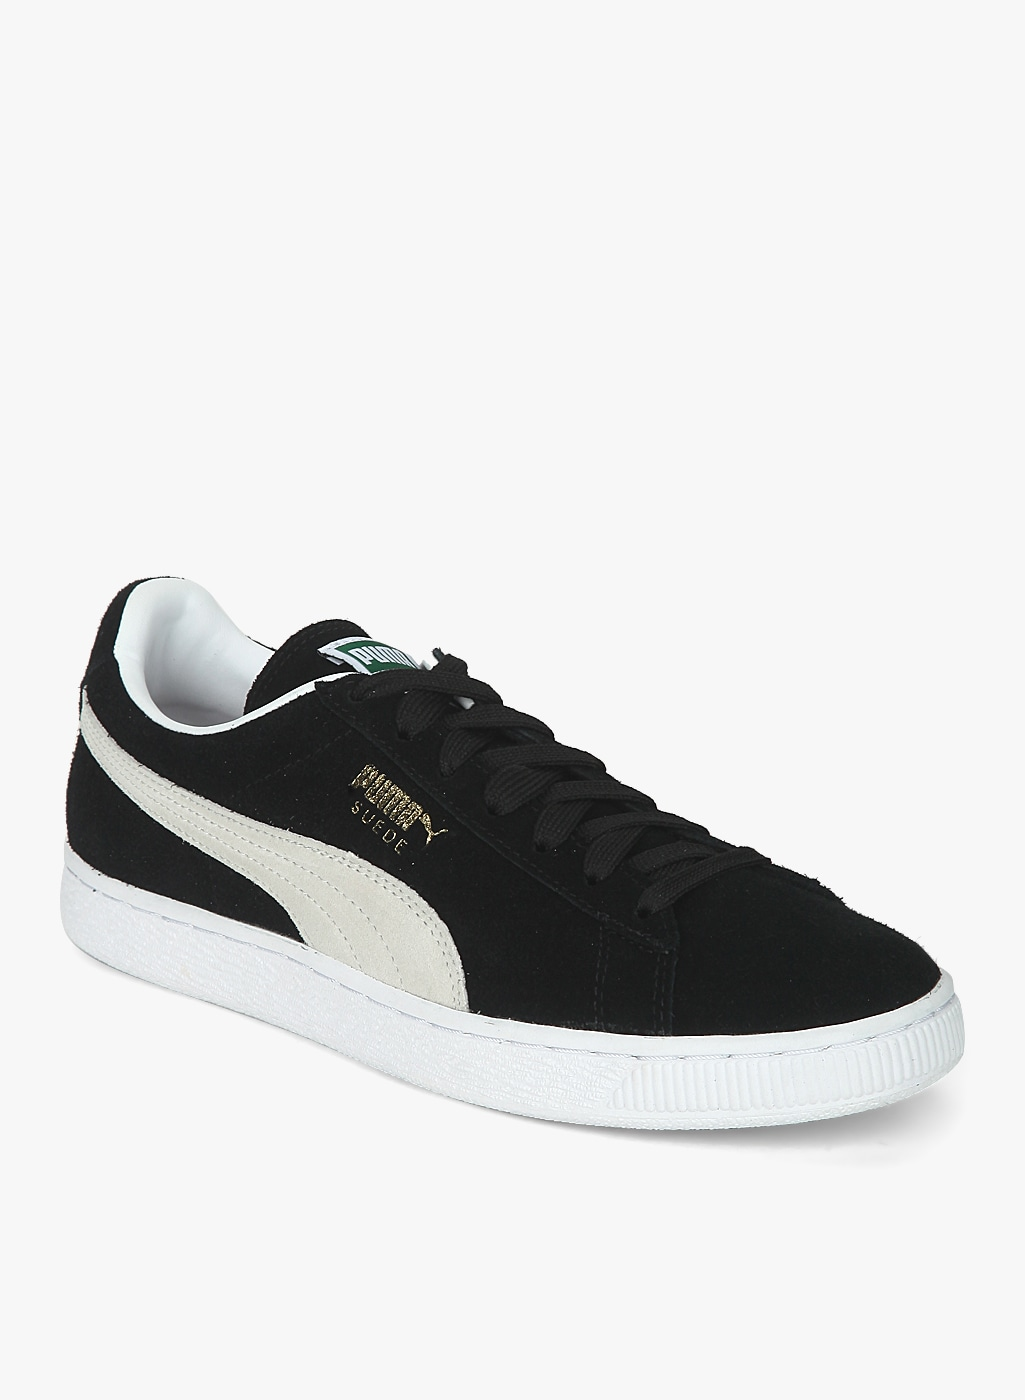 new arrivals 10871 a7b13 Suede Classic Black Sneakers